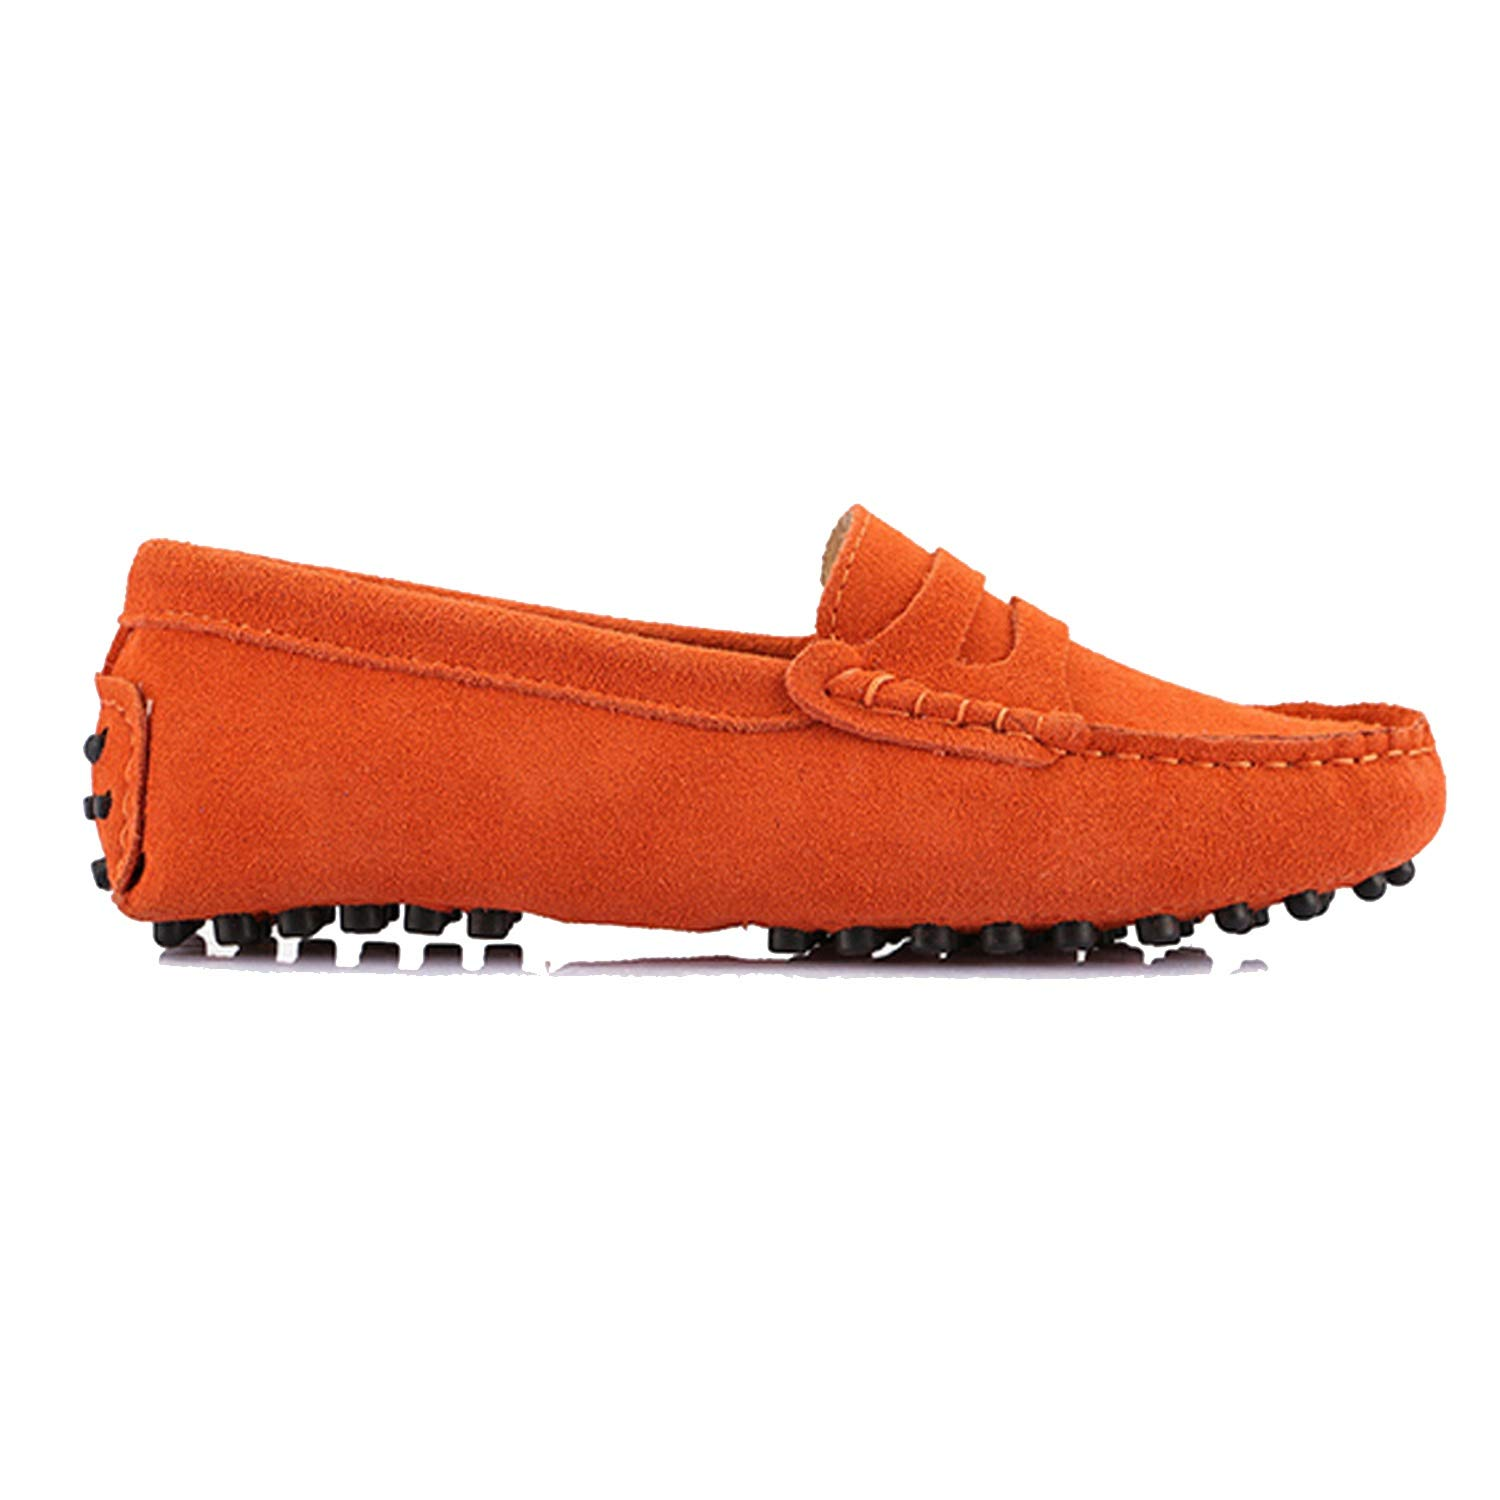 orange Women's Woman shoes Flats Casual Loafers Soft Slip On Moccasins Lady Driving shoes